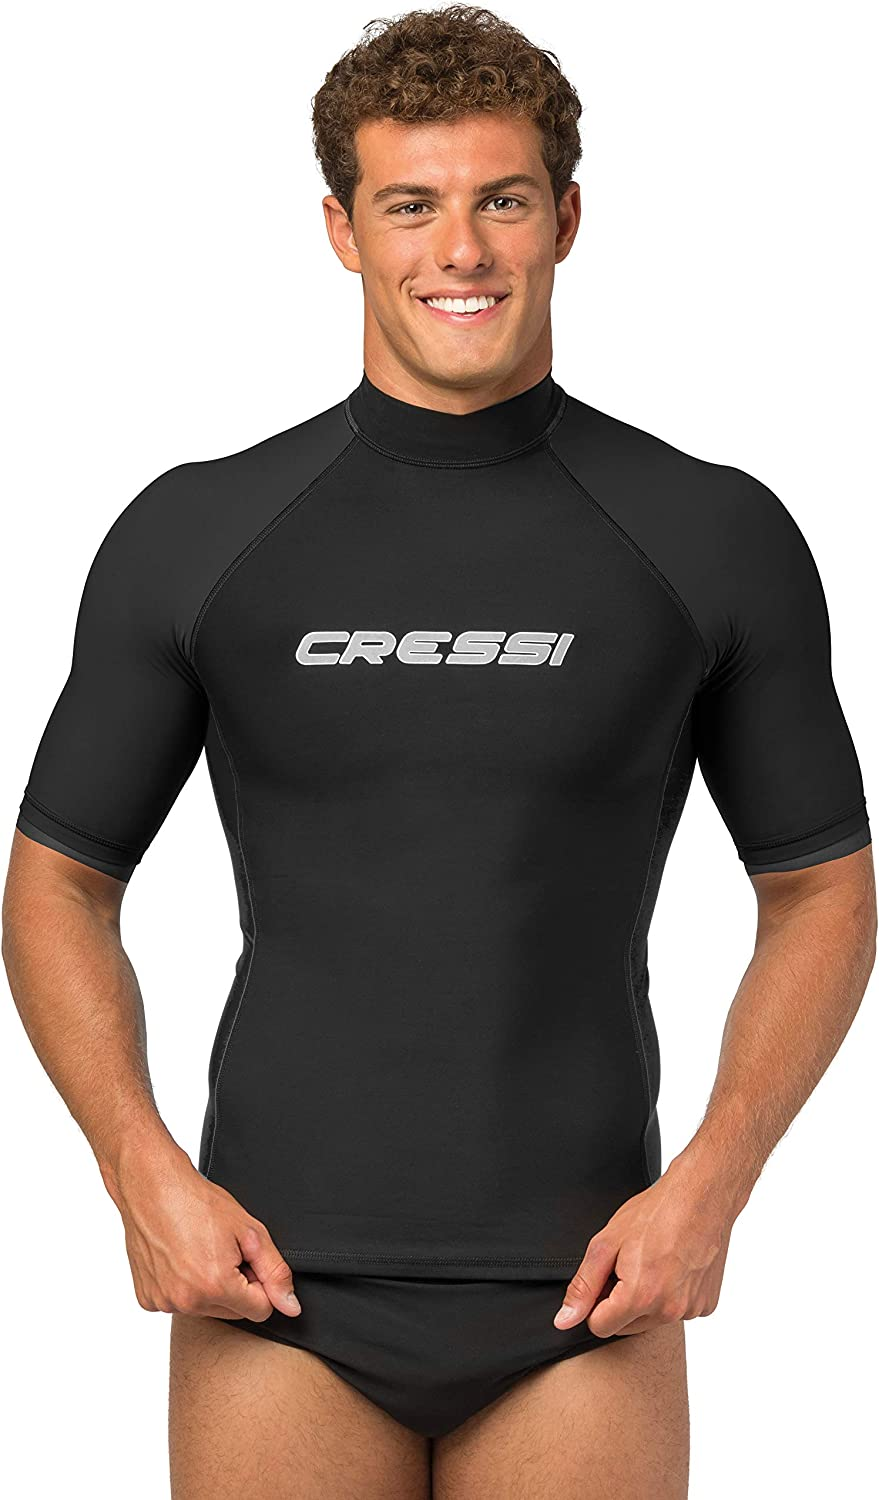 Cressi Men's Performance Dry-Fit Rash Guard for Swimming, Surfing, Diving and Water Activities - Keeps Body Warm - UV Sun Protection - Designed in Italy